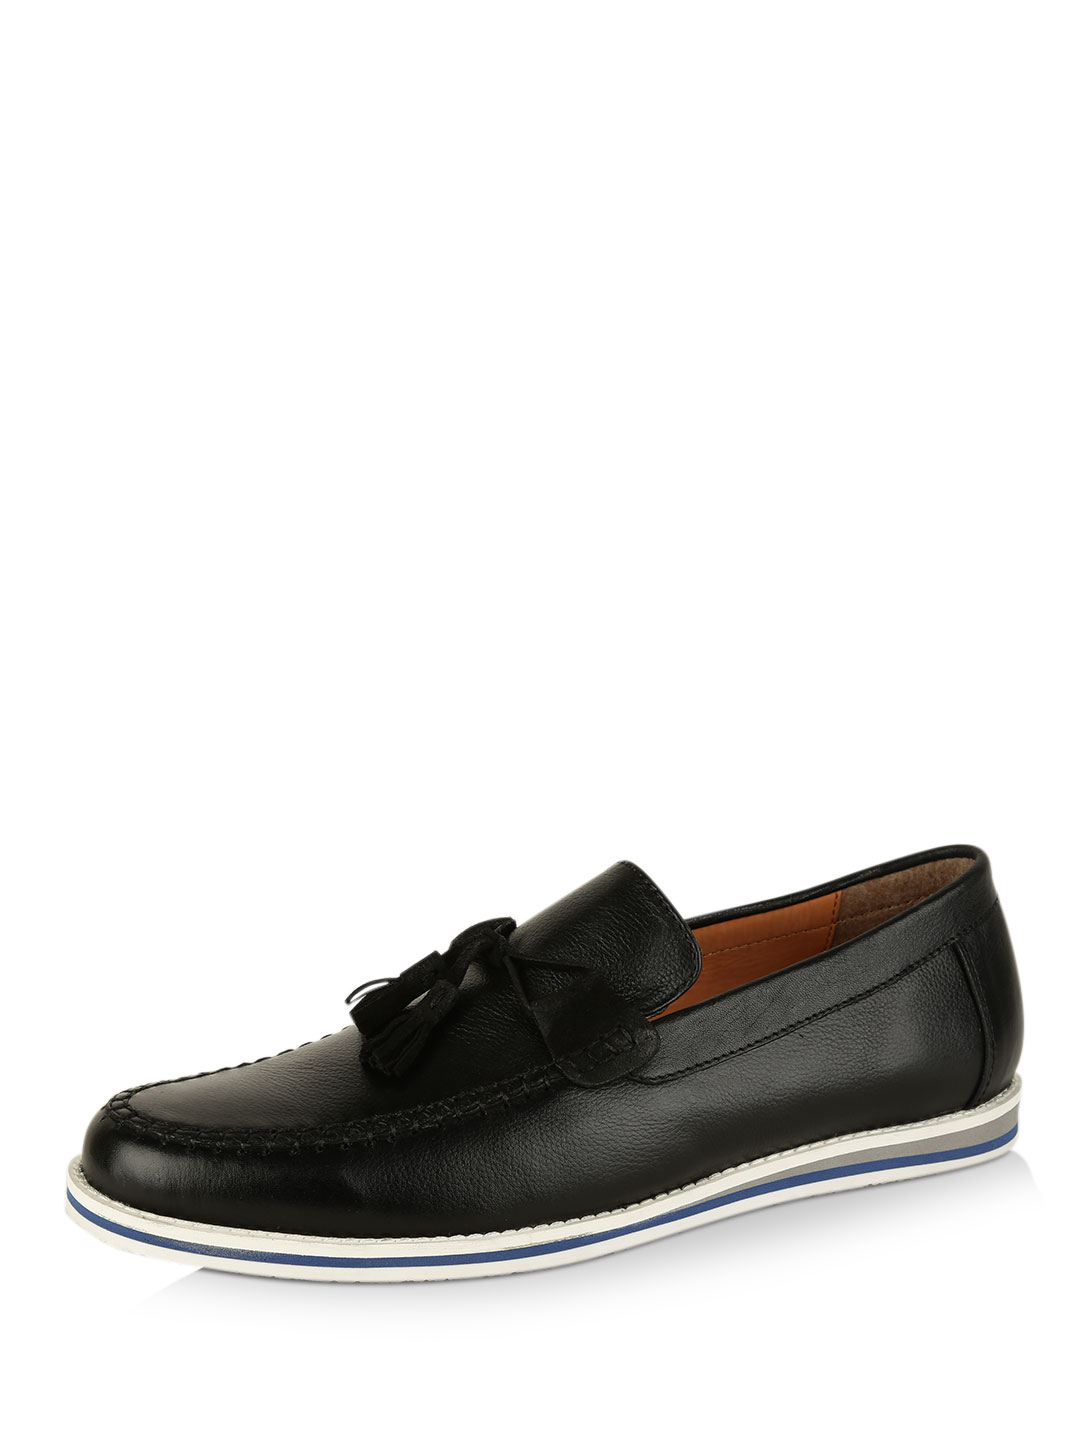 Griffin Black Leather Tasseld Loafers 1